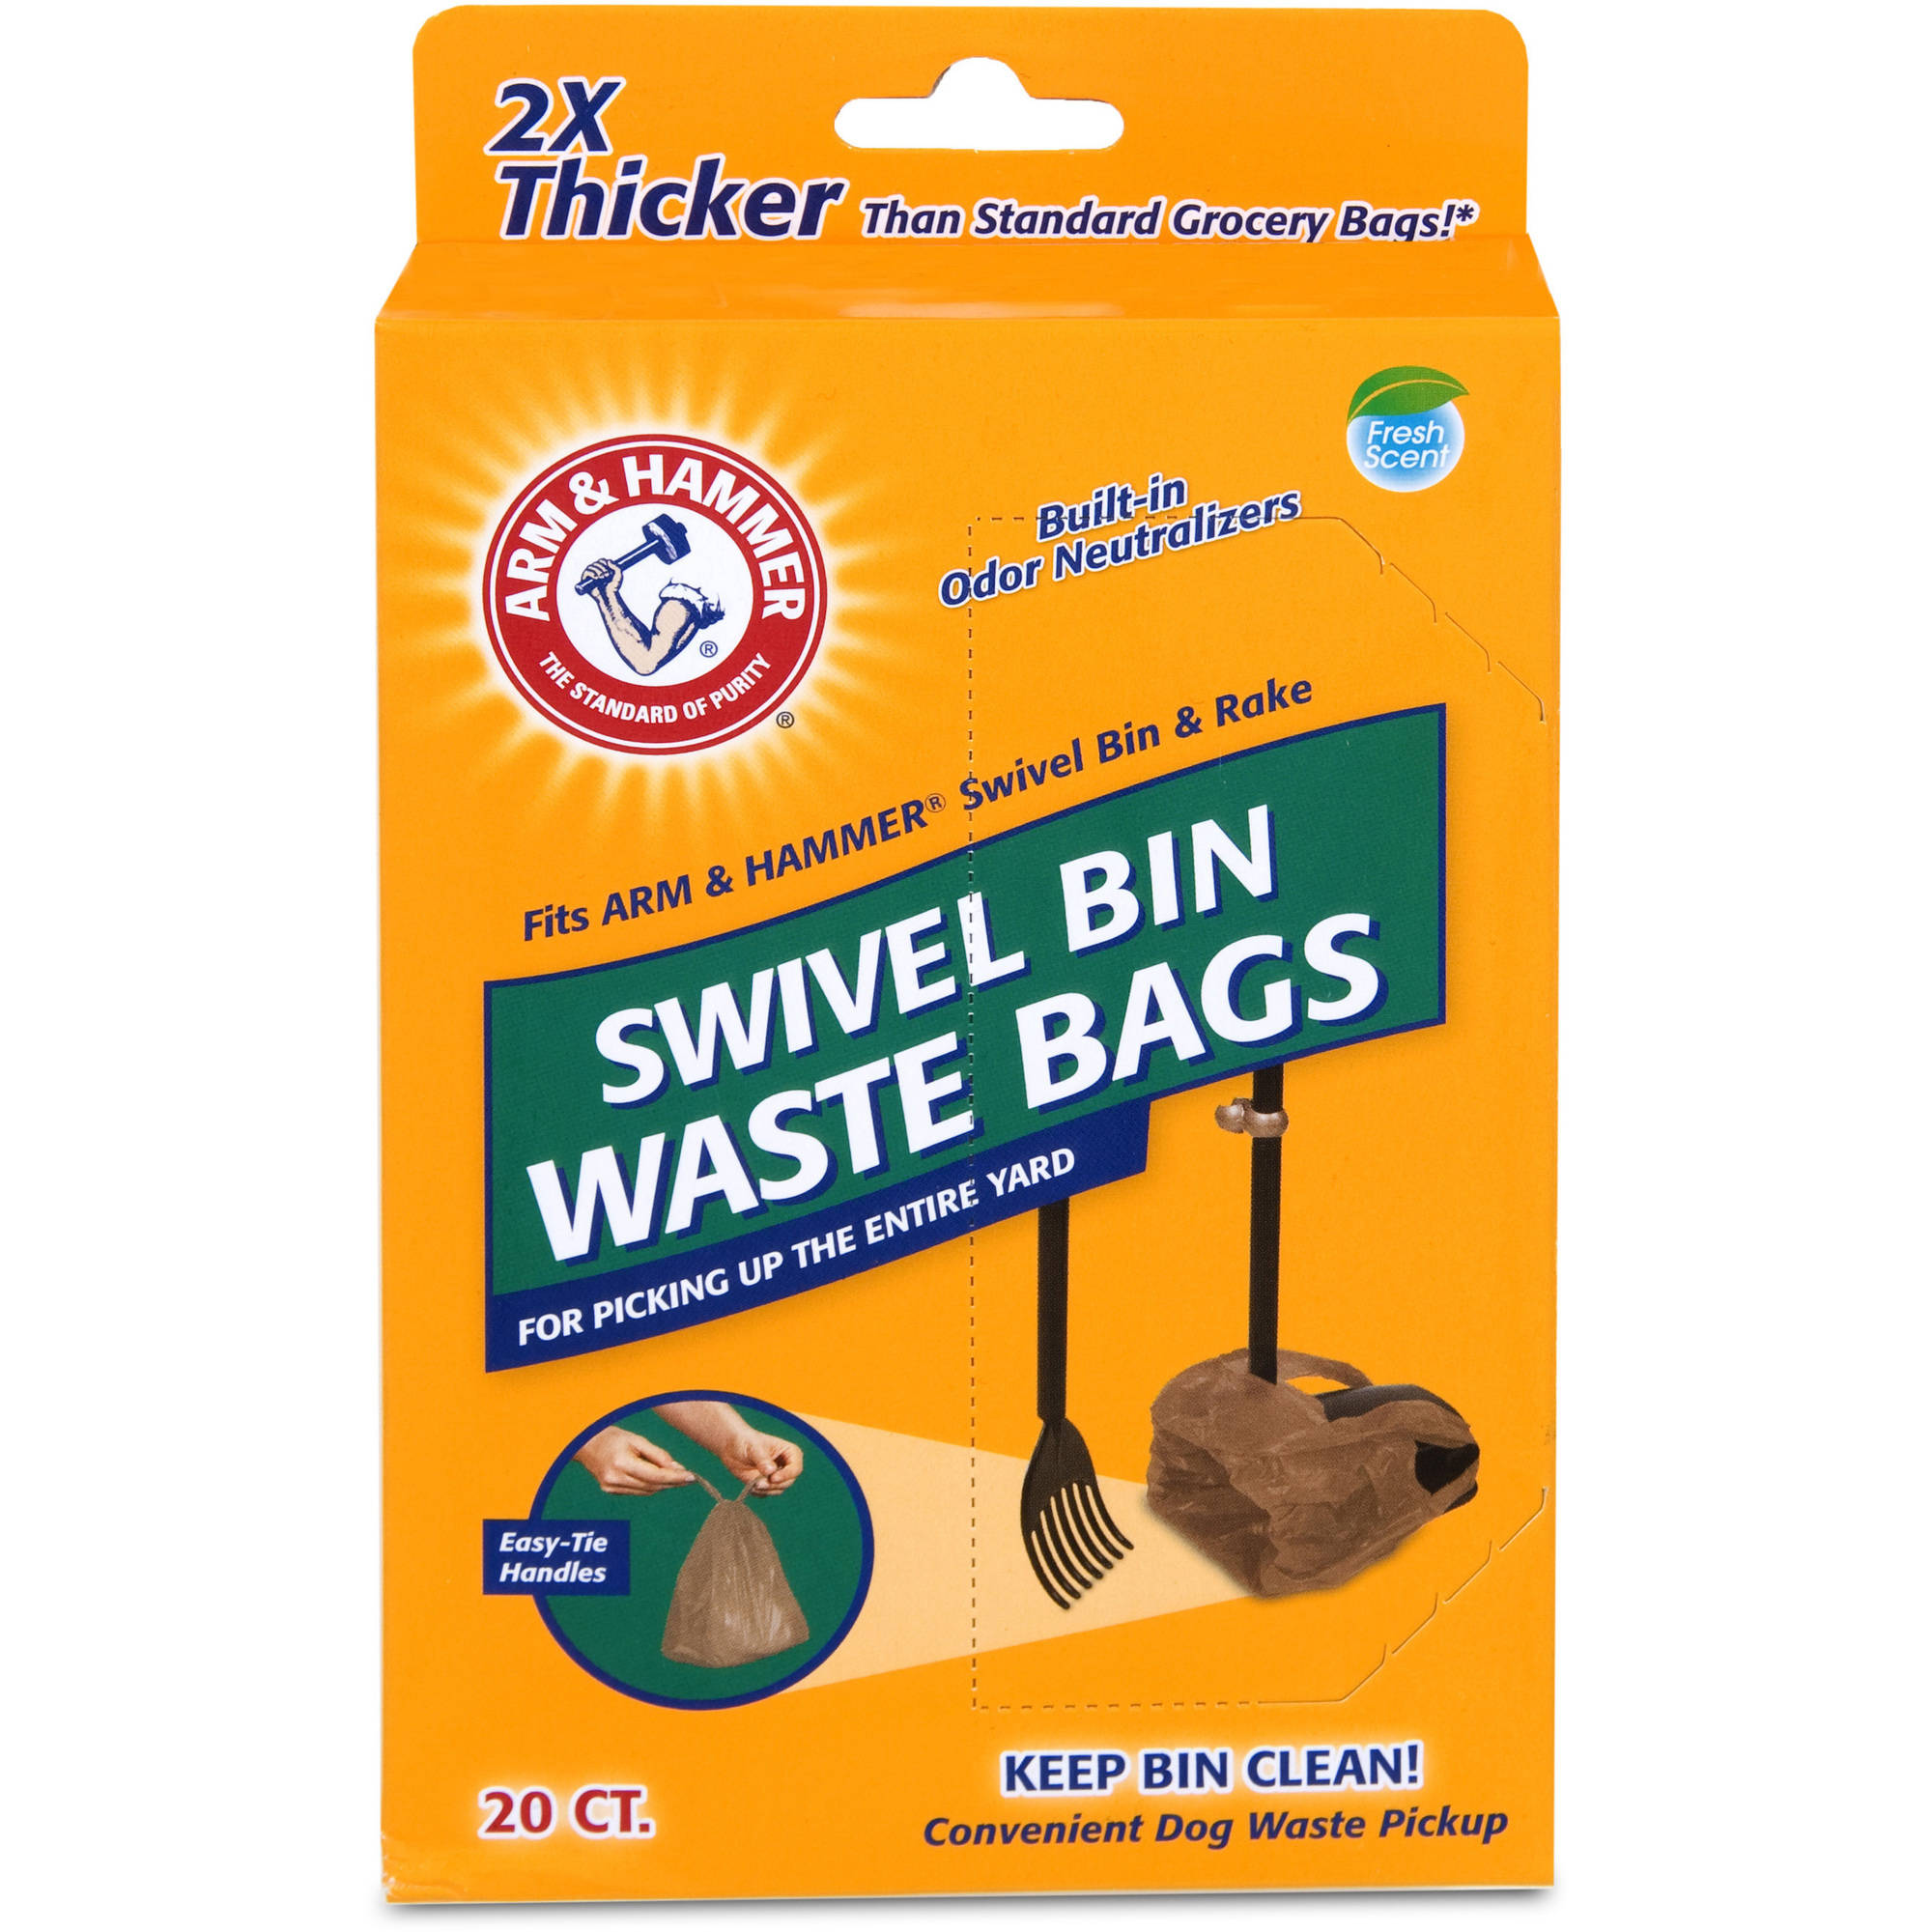 ARM & HAMMER Swivel Bin Waste Bags, Pack of 20